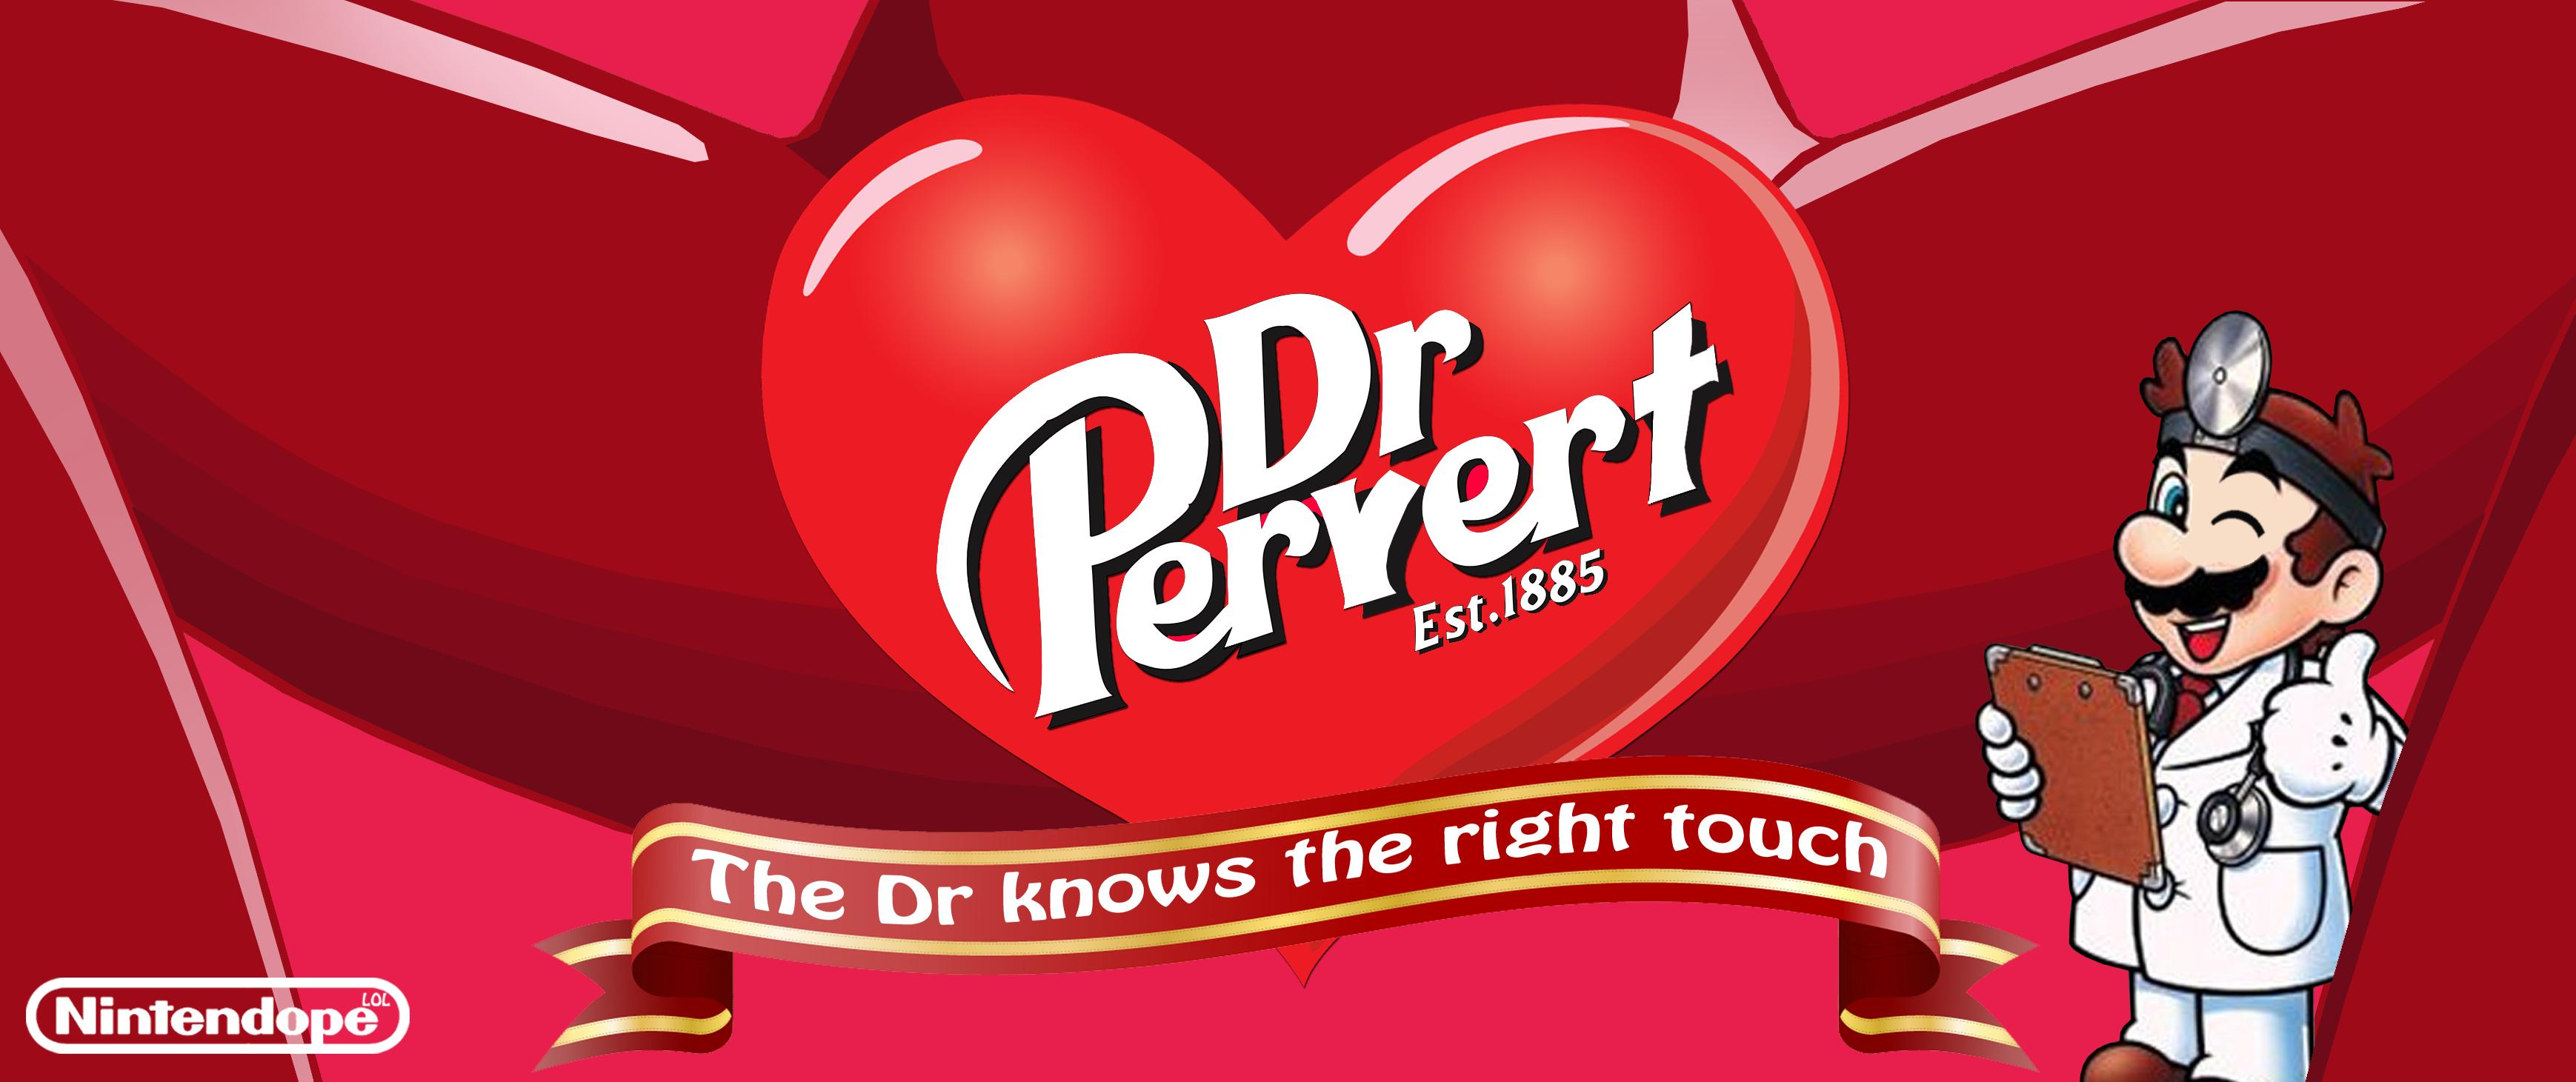 Image For > Dr Pepper Wallpapers Iphone